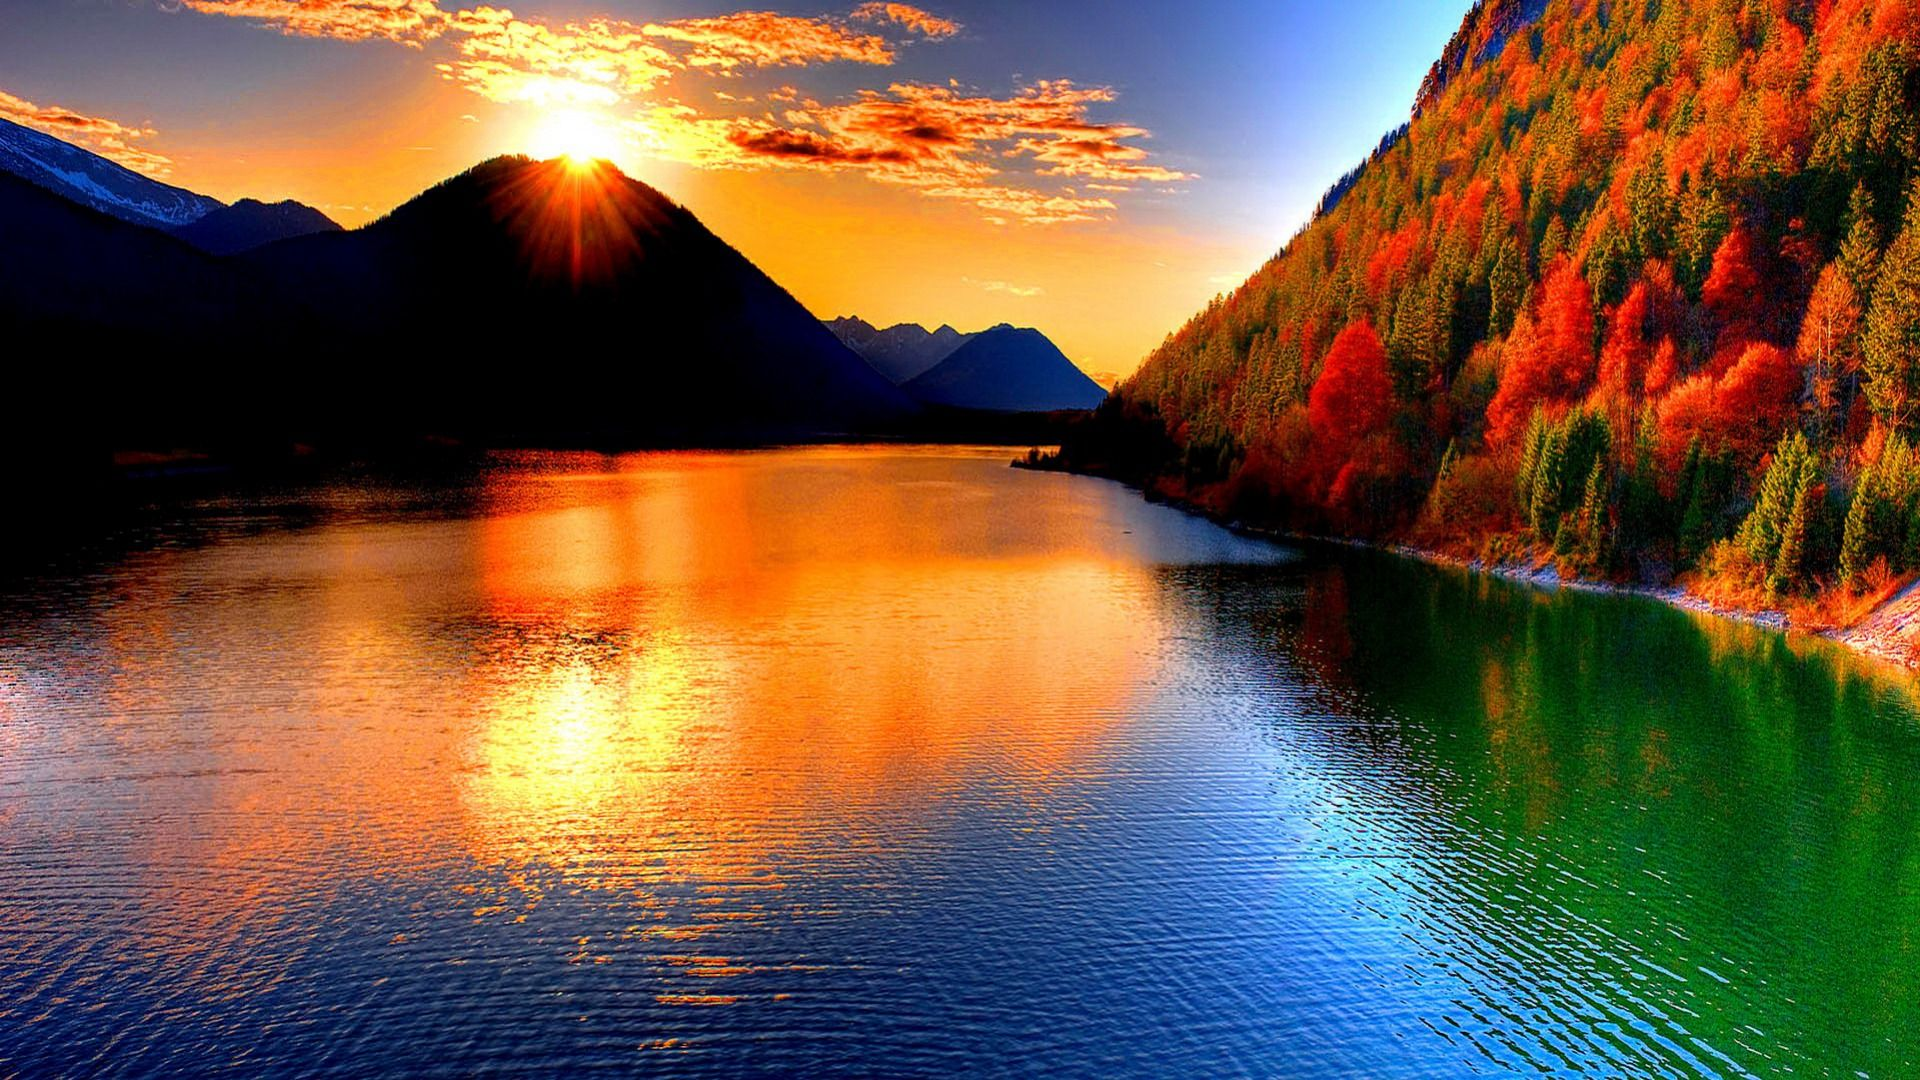 Pictures Of Mountains And Lakes At Sunset